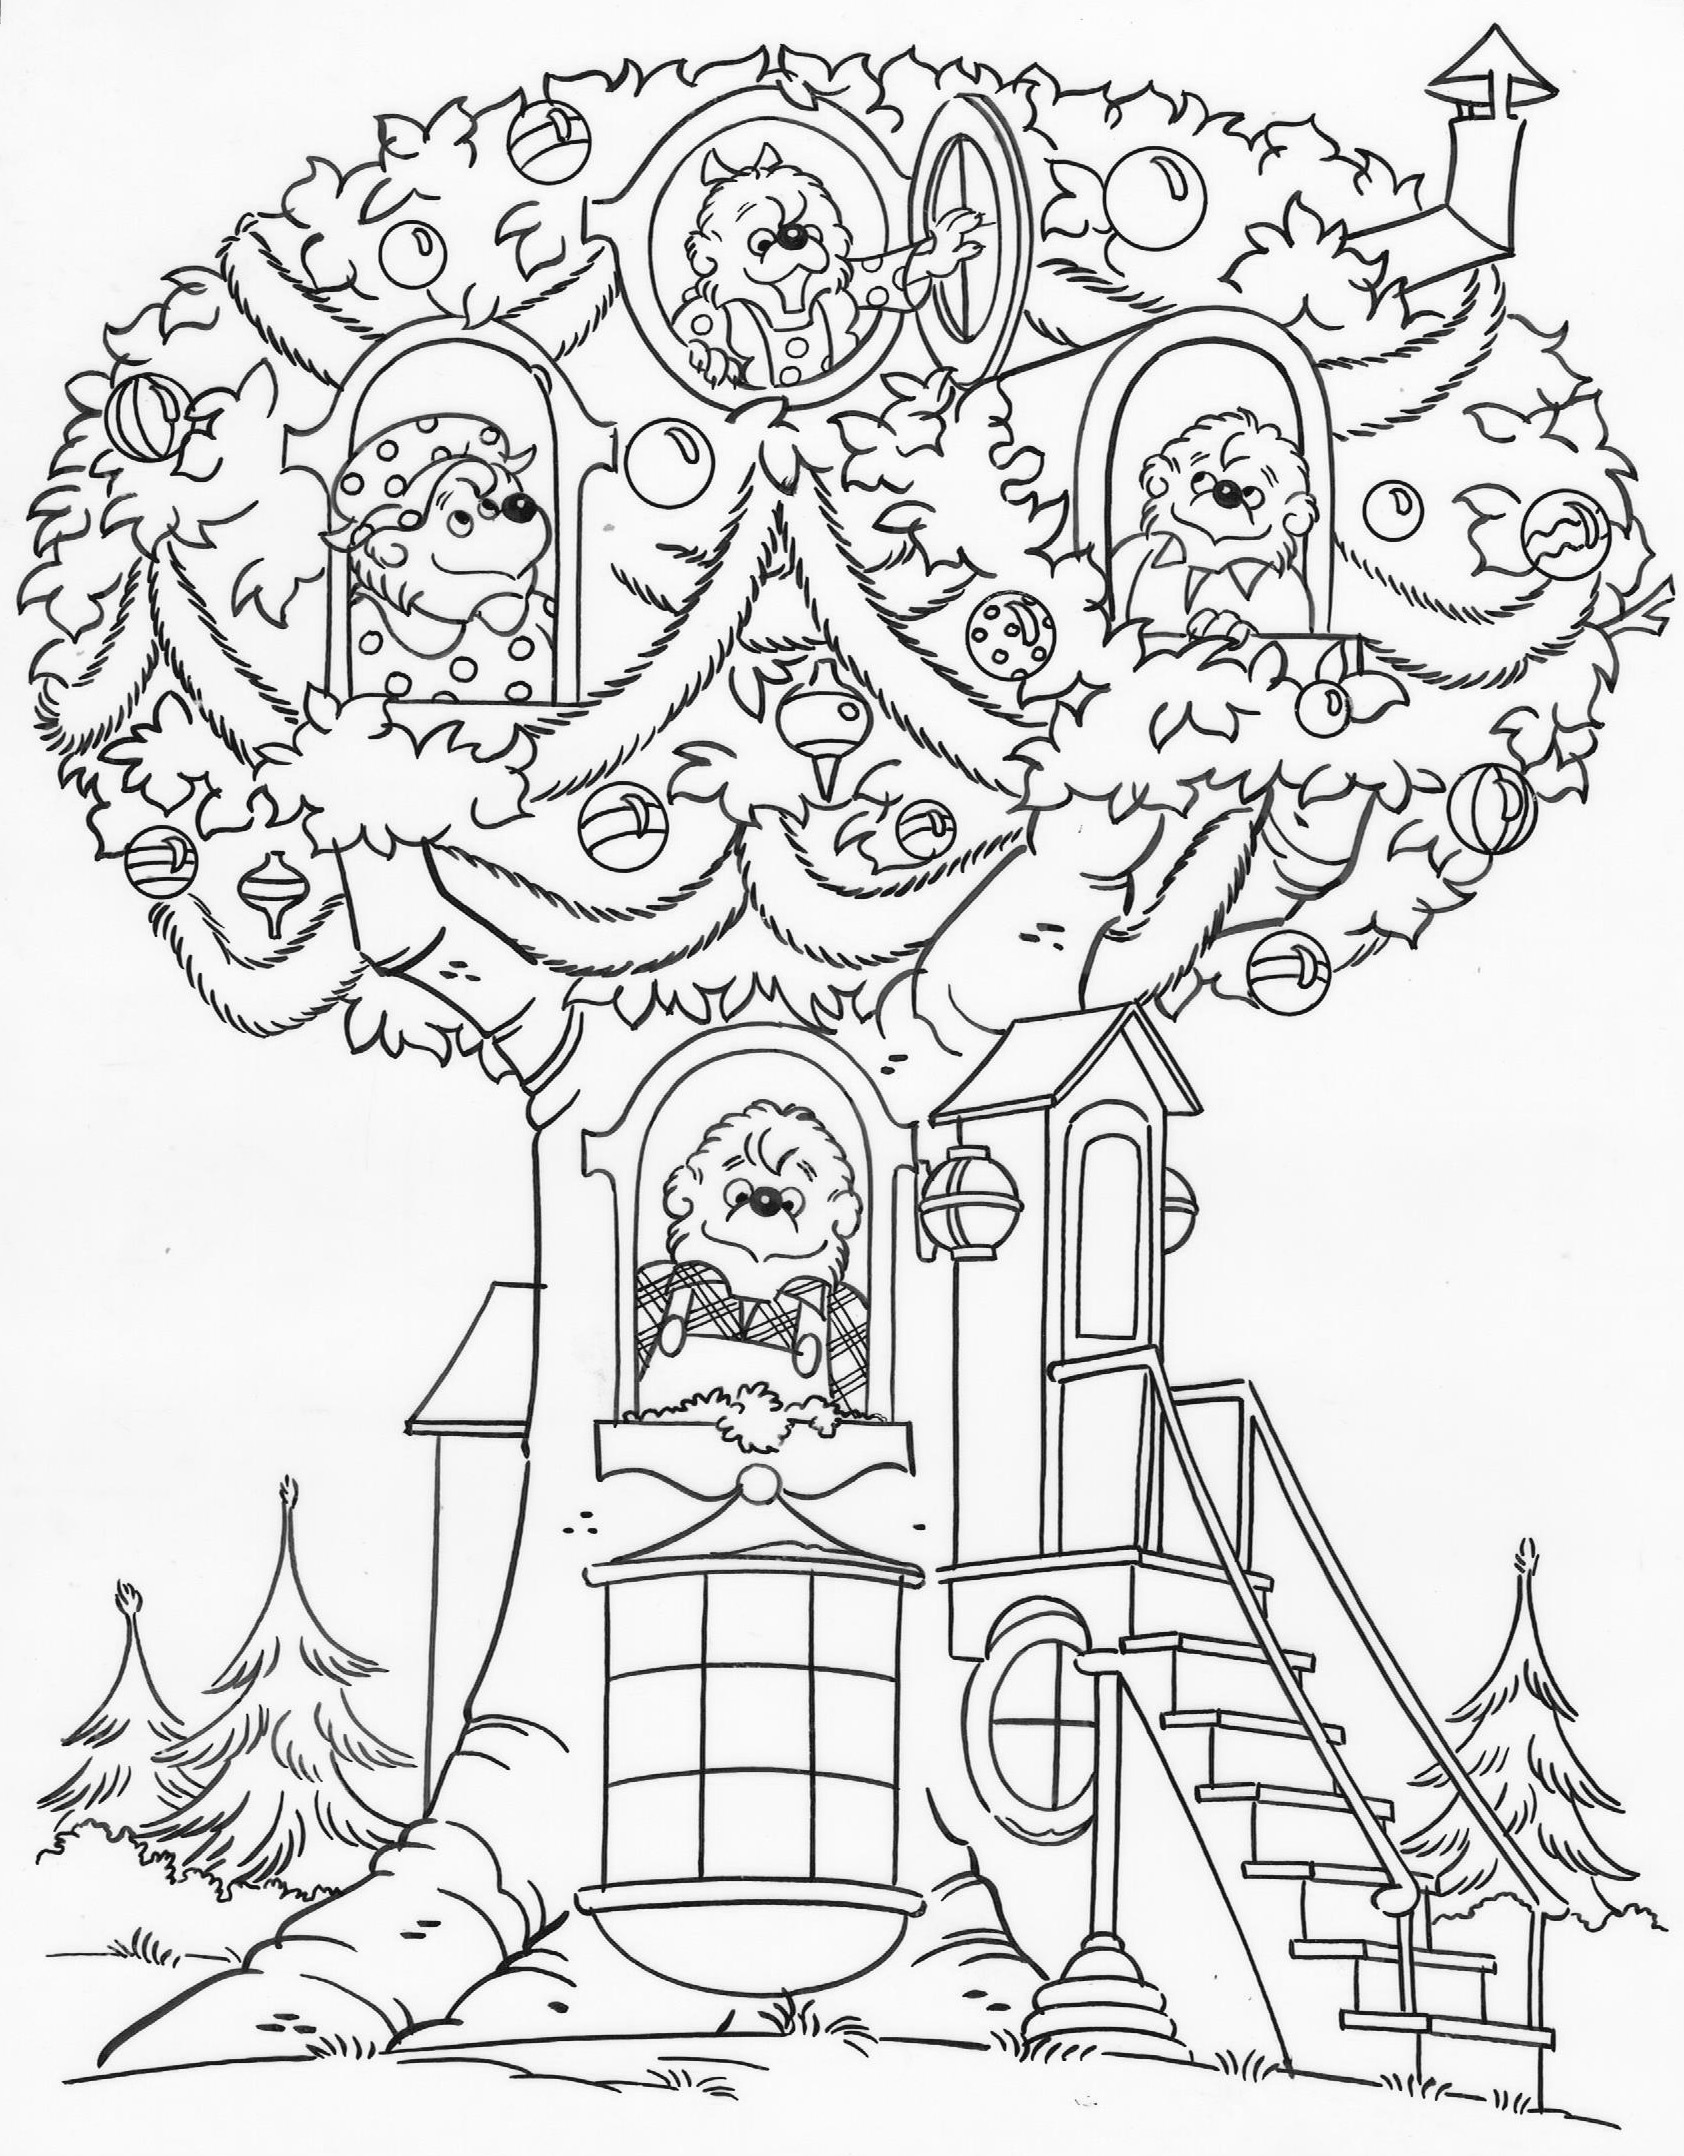 Berenstain Bears Coloring Pages at GetDrawings | Free download